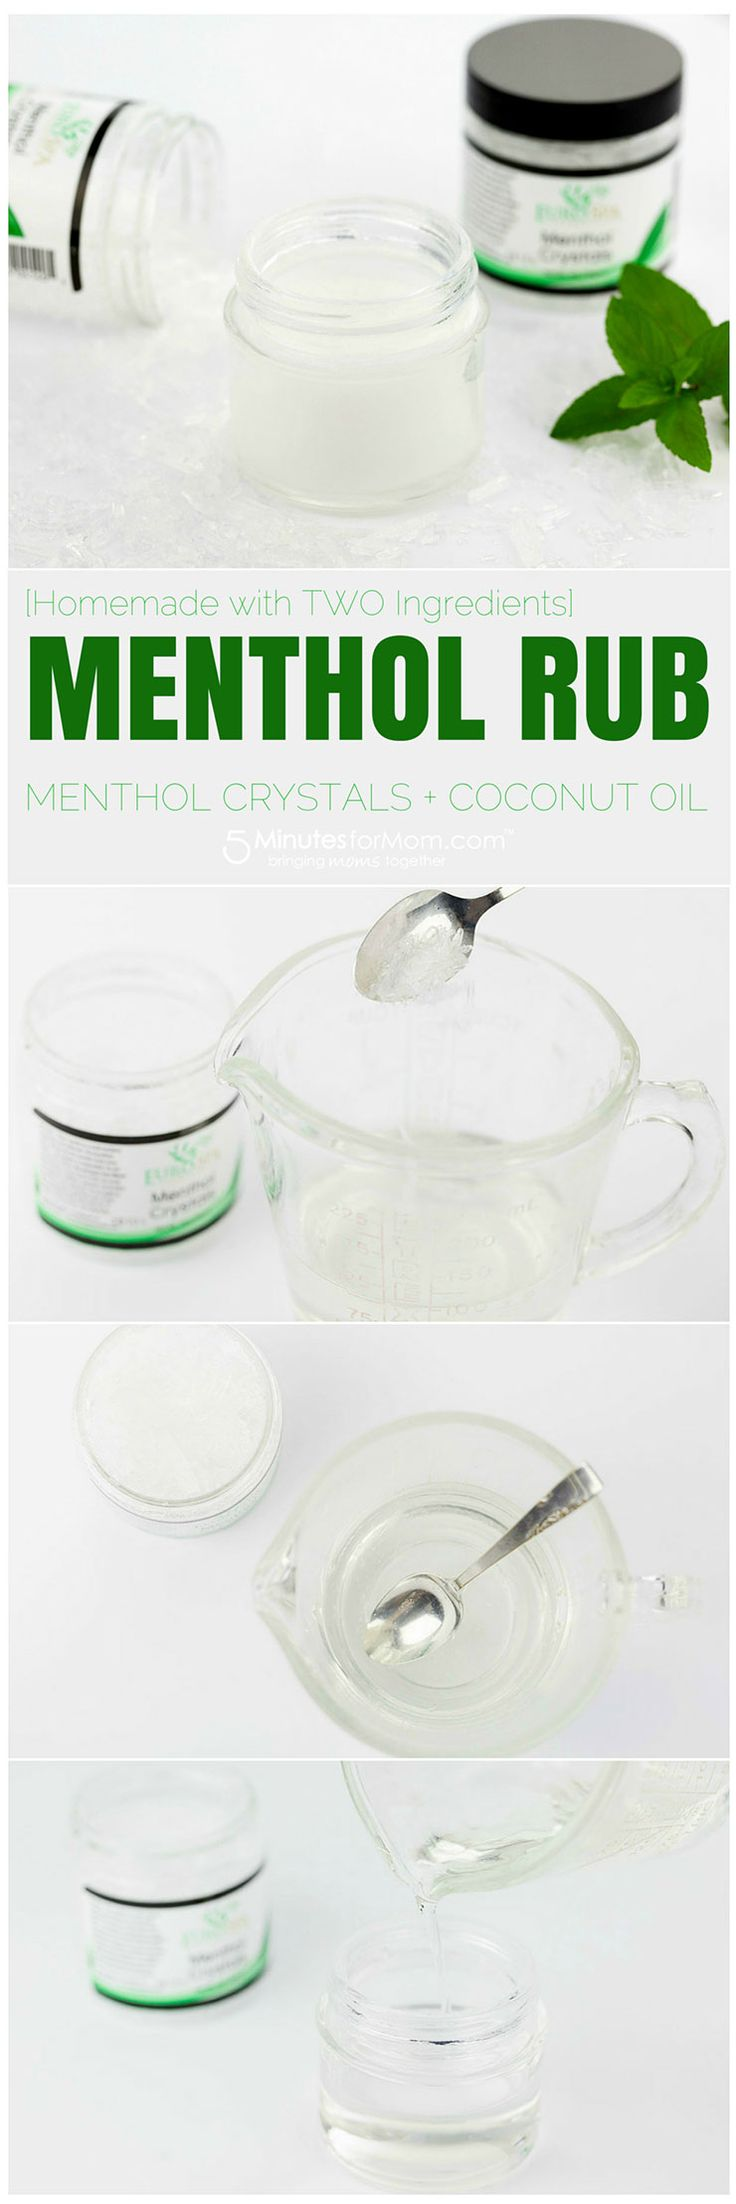 DIY Homemade Menthol Rub - Super simple homemade menthol rub with coconut oil and menthol crystals